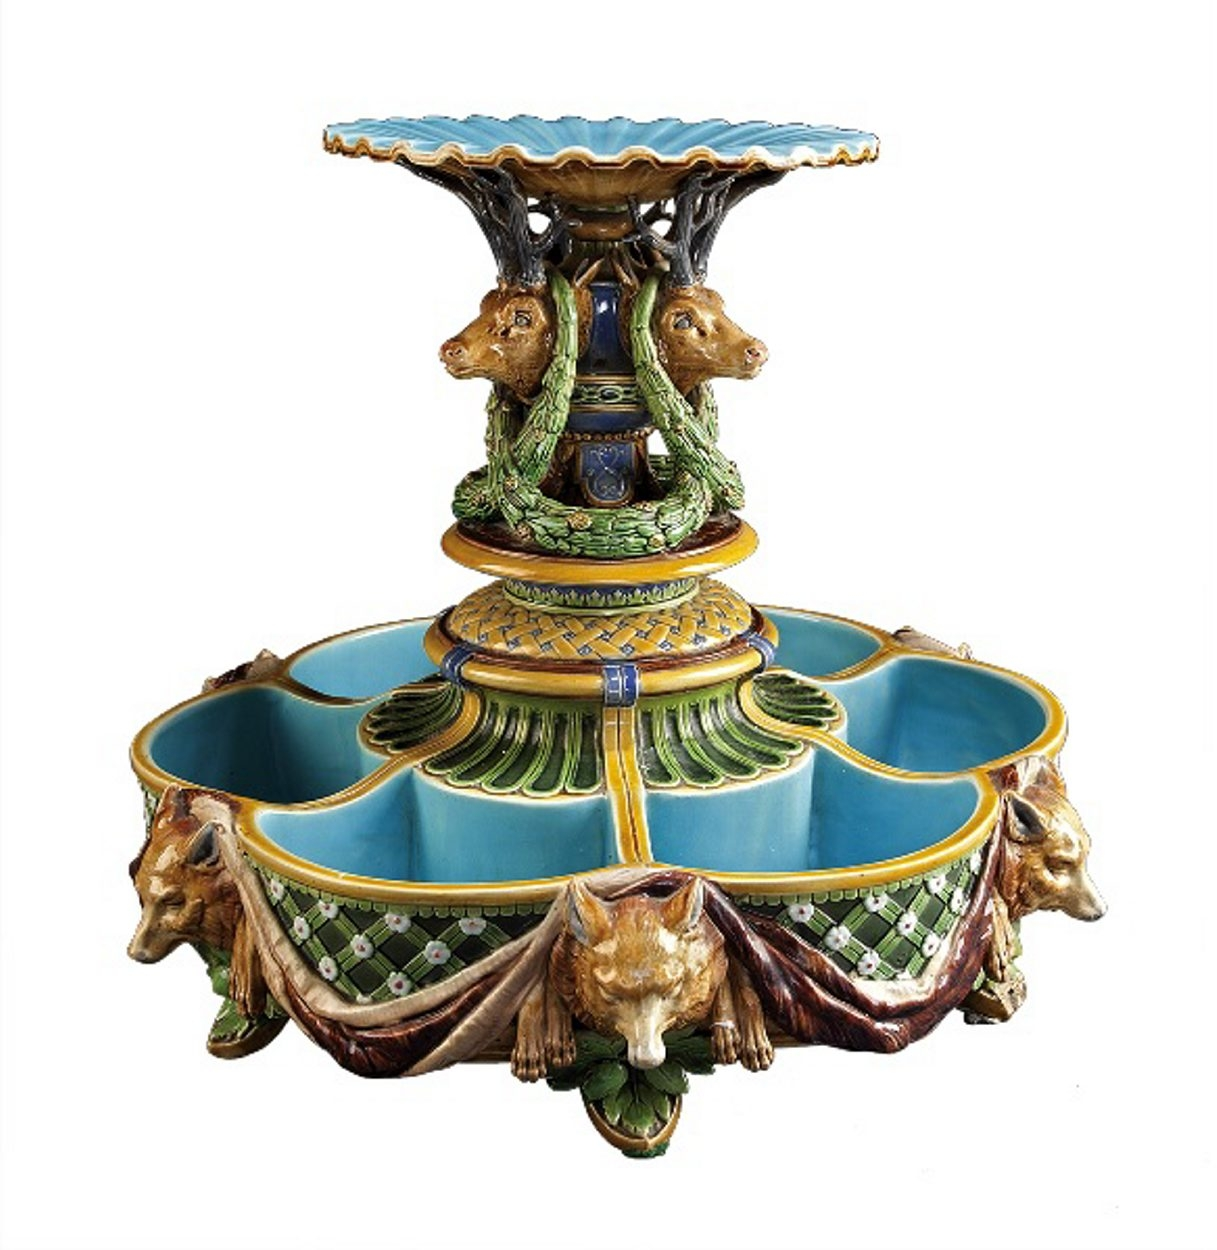 Why an ice stand would be decorated with stag heads and wolves is a mystery, but this 14-inch-high piece of majolica, used to serve dessert, sold for $8,610 at Neal Auction Co. in New Orleans.